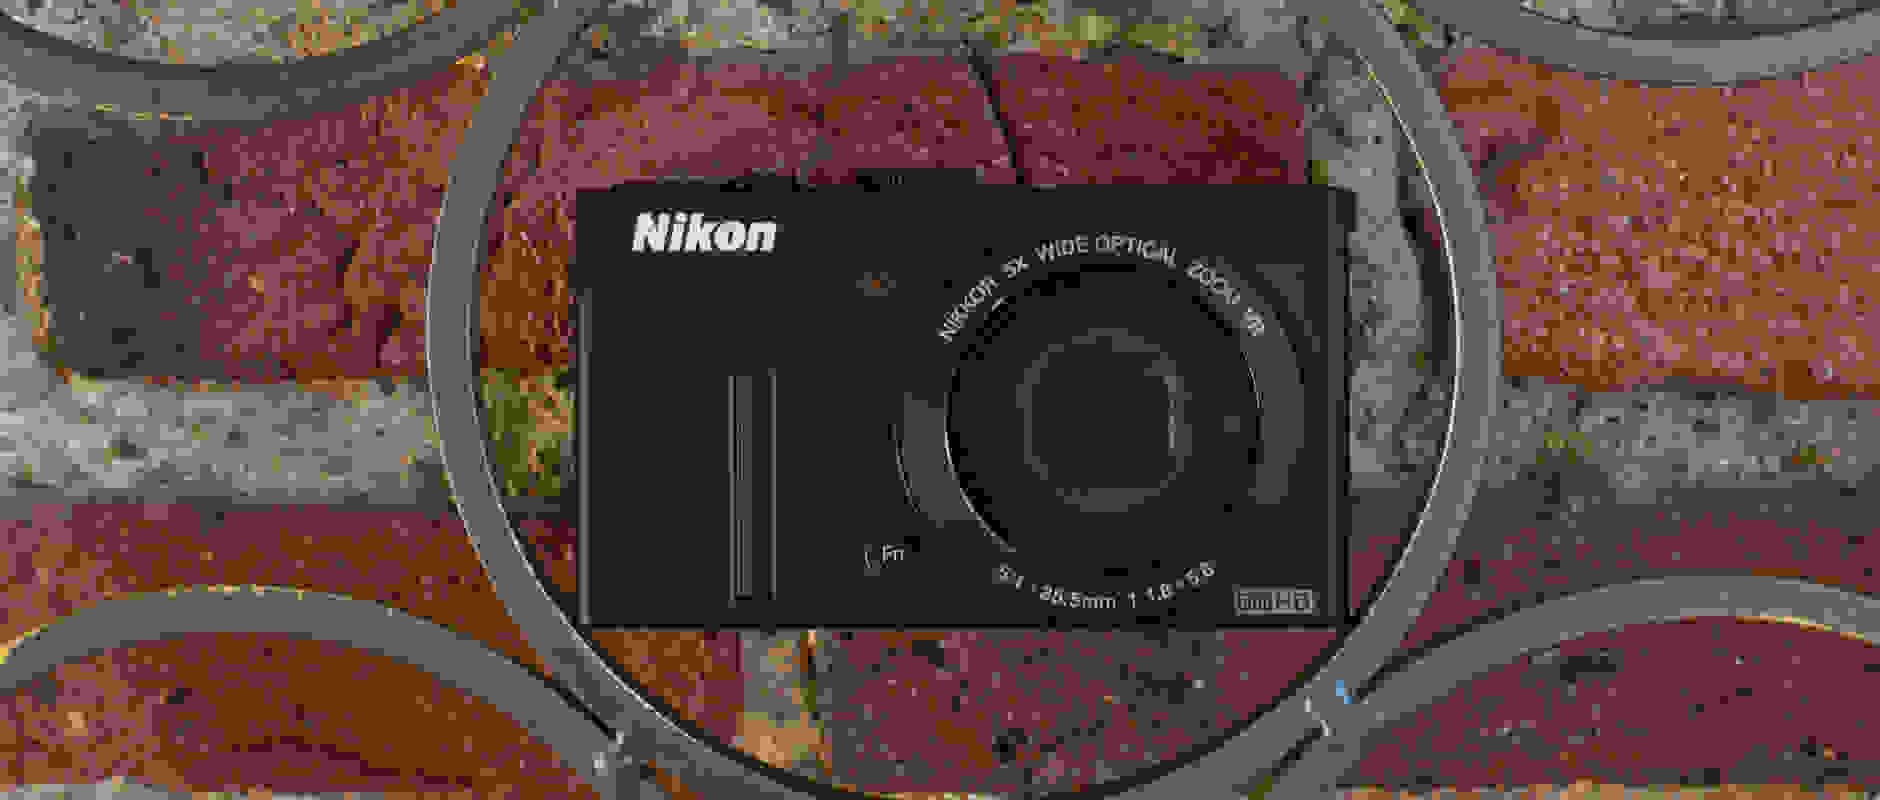 A photograph of the Nikon Coolpix P340's front face.